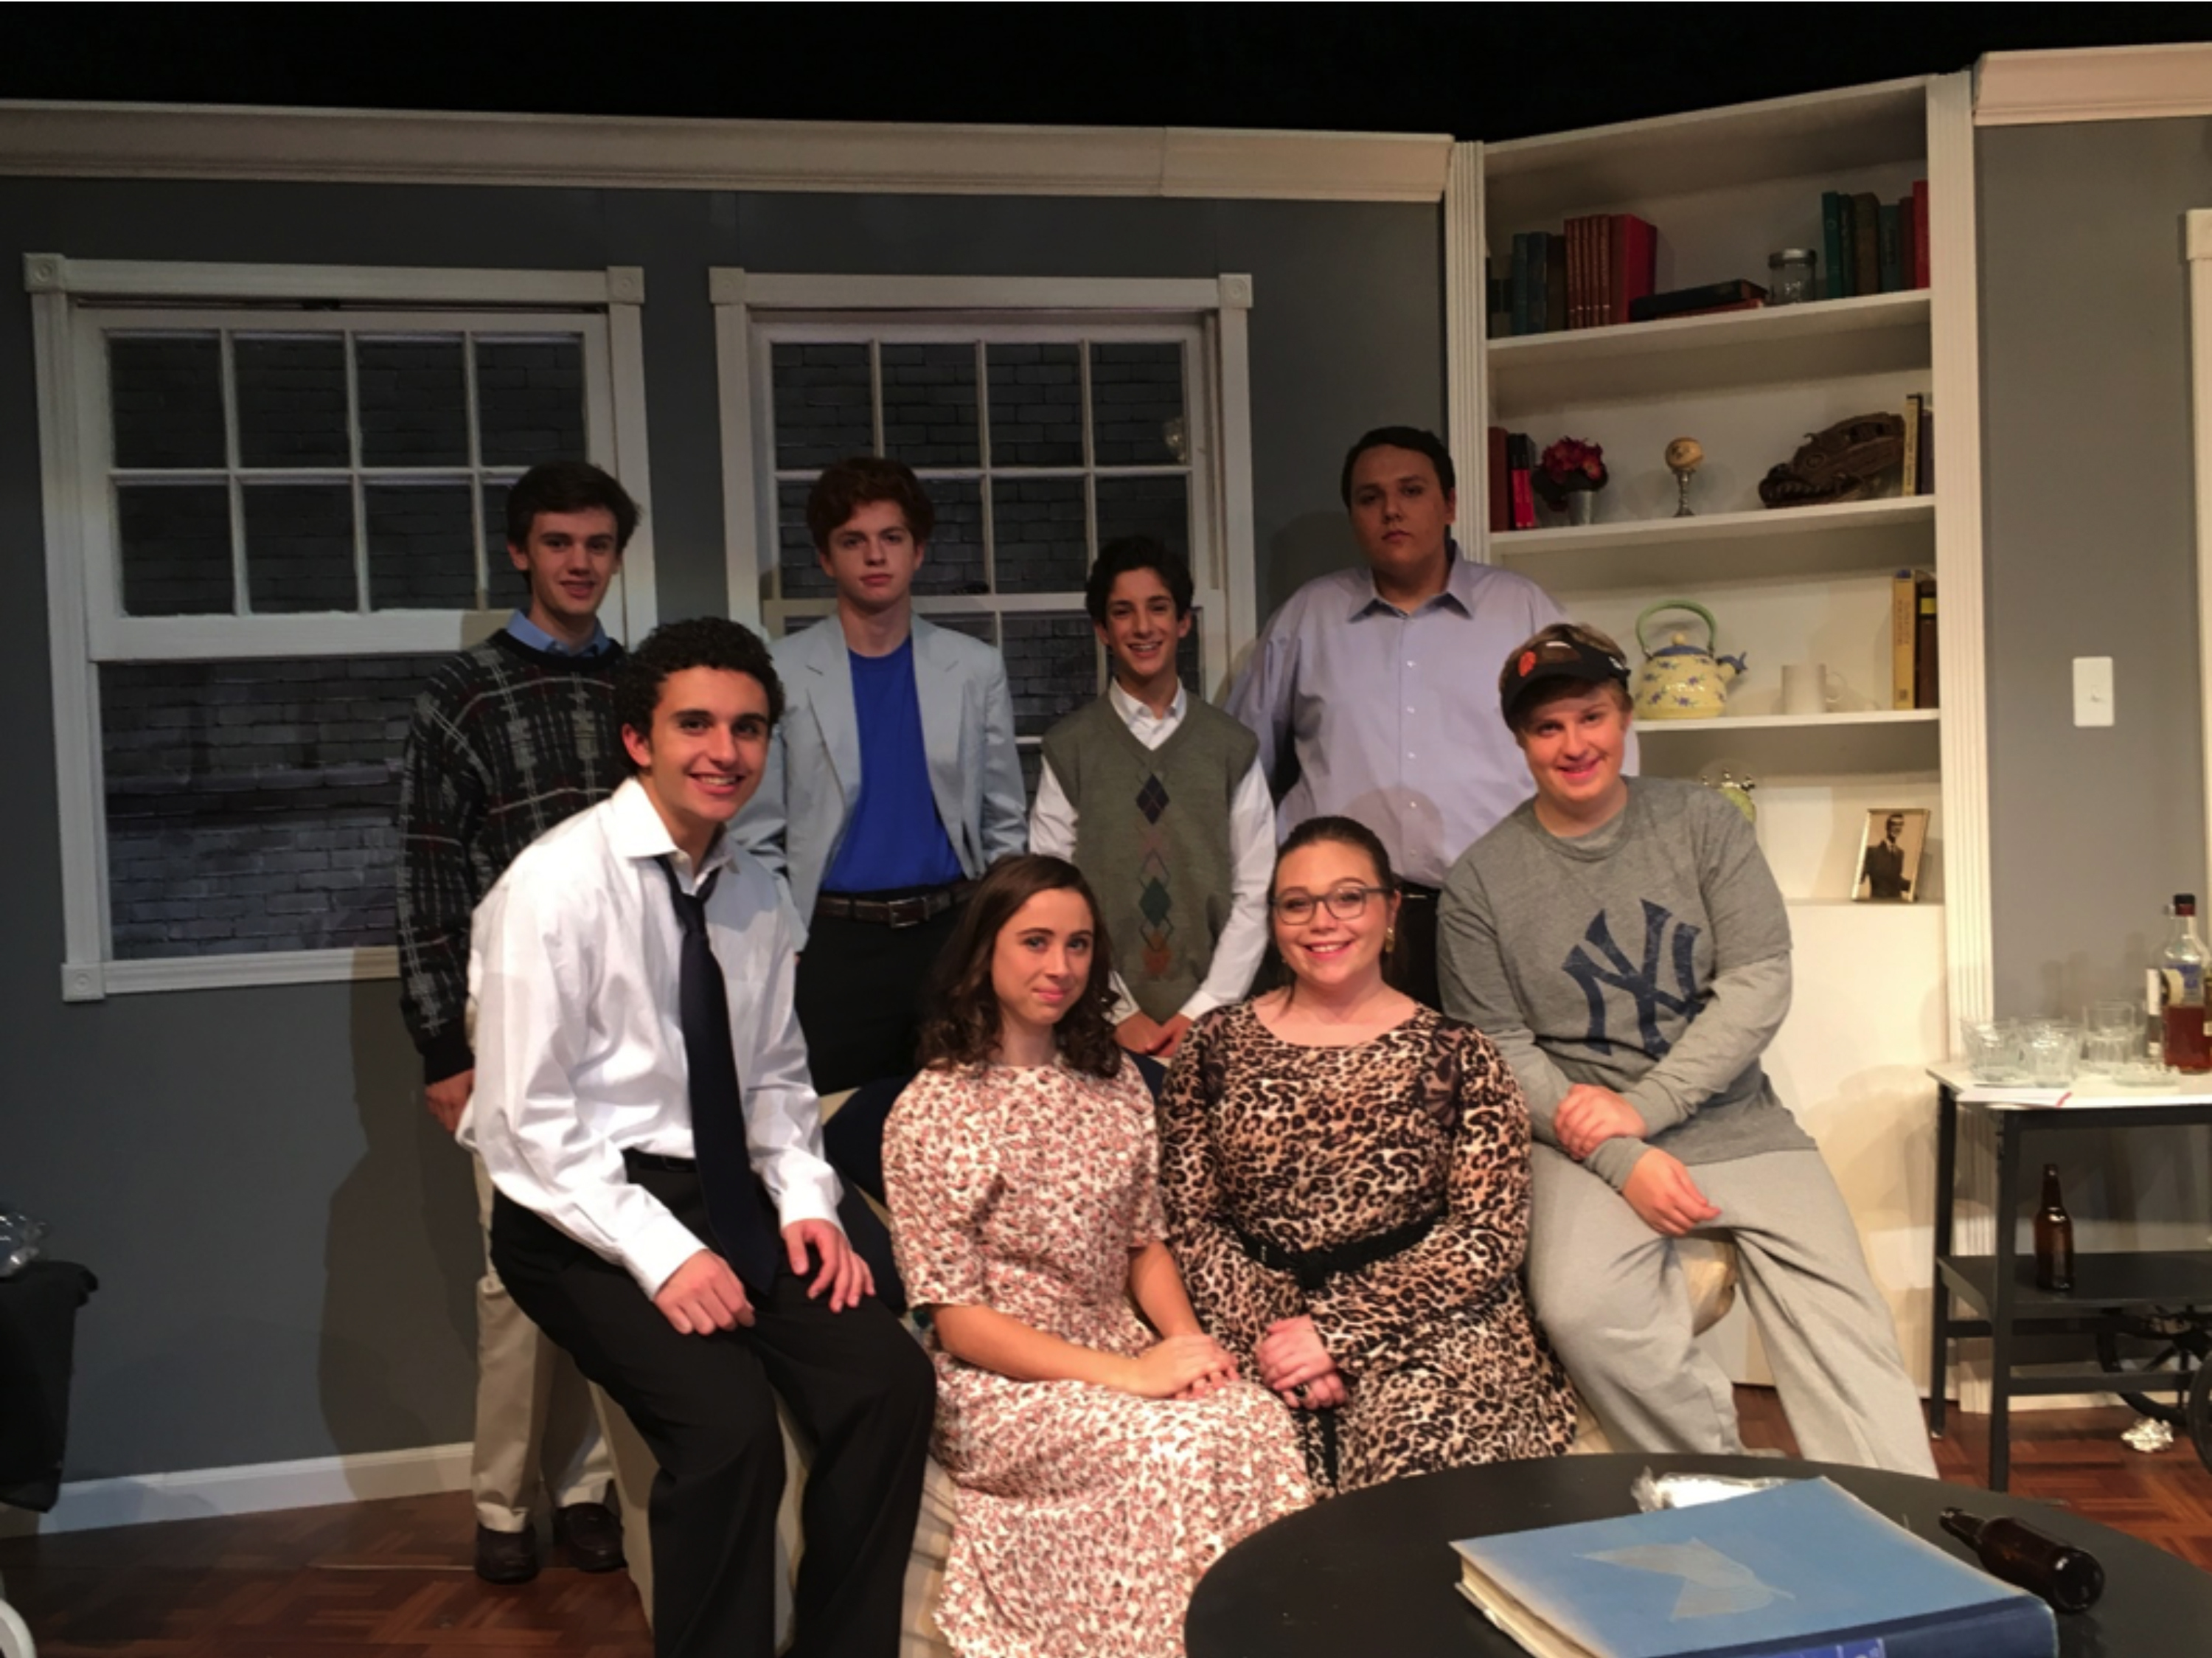 Back row: From left, Nick Harwas, Dan Wilde, Christo Siderakis, Aneris Rivera-Wagner Front row: From left, Raffi Wright, Sophia Sorrentino, Maddy Bedenko, Justin McMullen